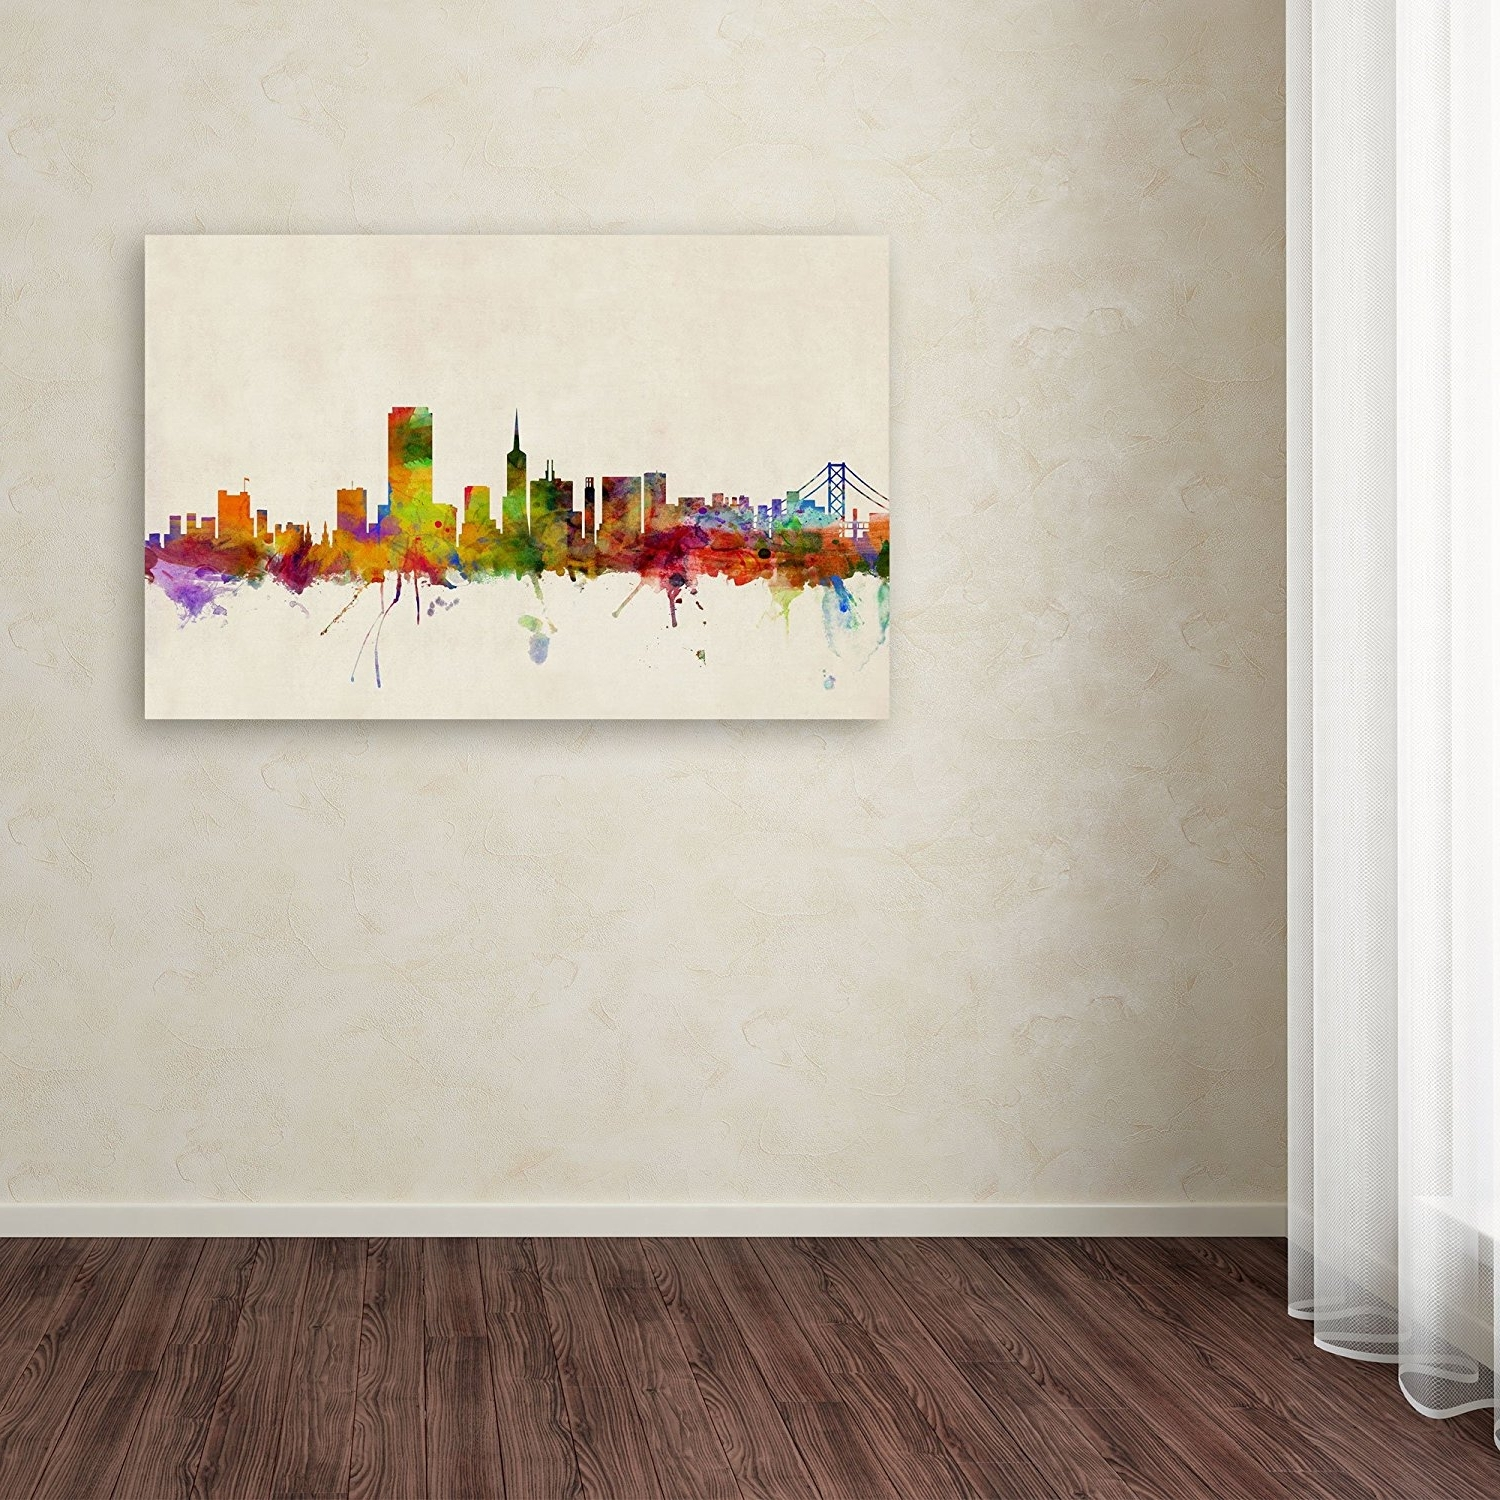 Popular Newcastle Canvas Wall Art In Amazon: San Francisco, Californiamichael Tompsett, (View 15 of 15)